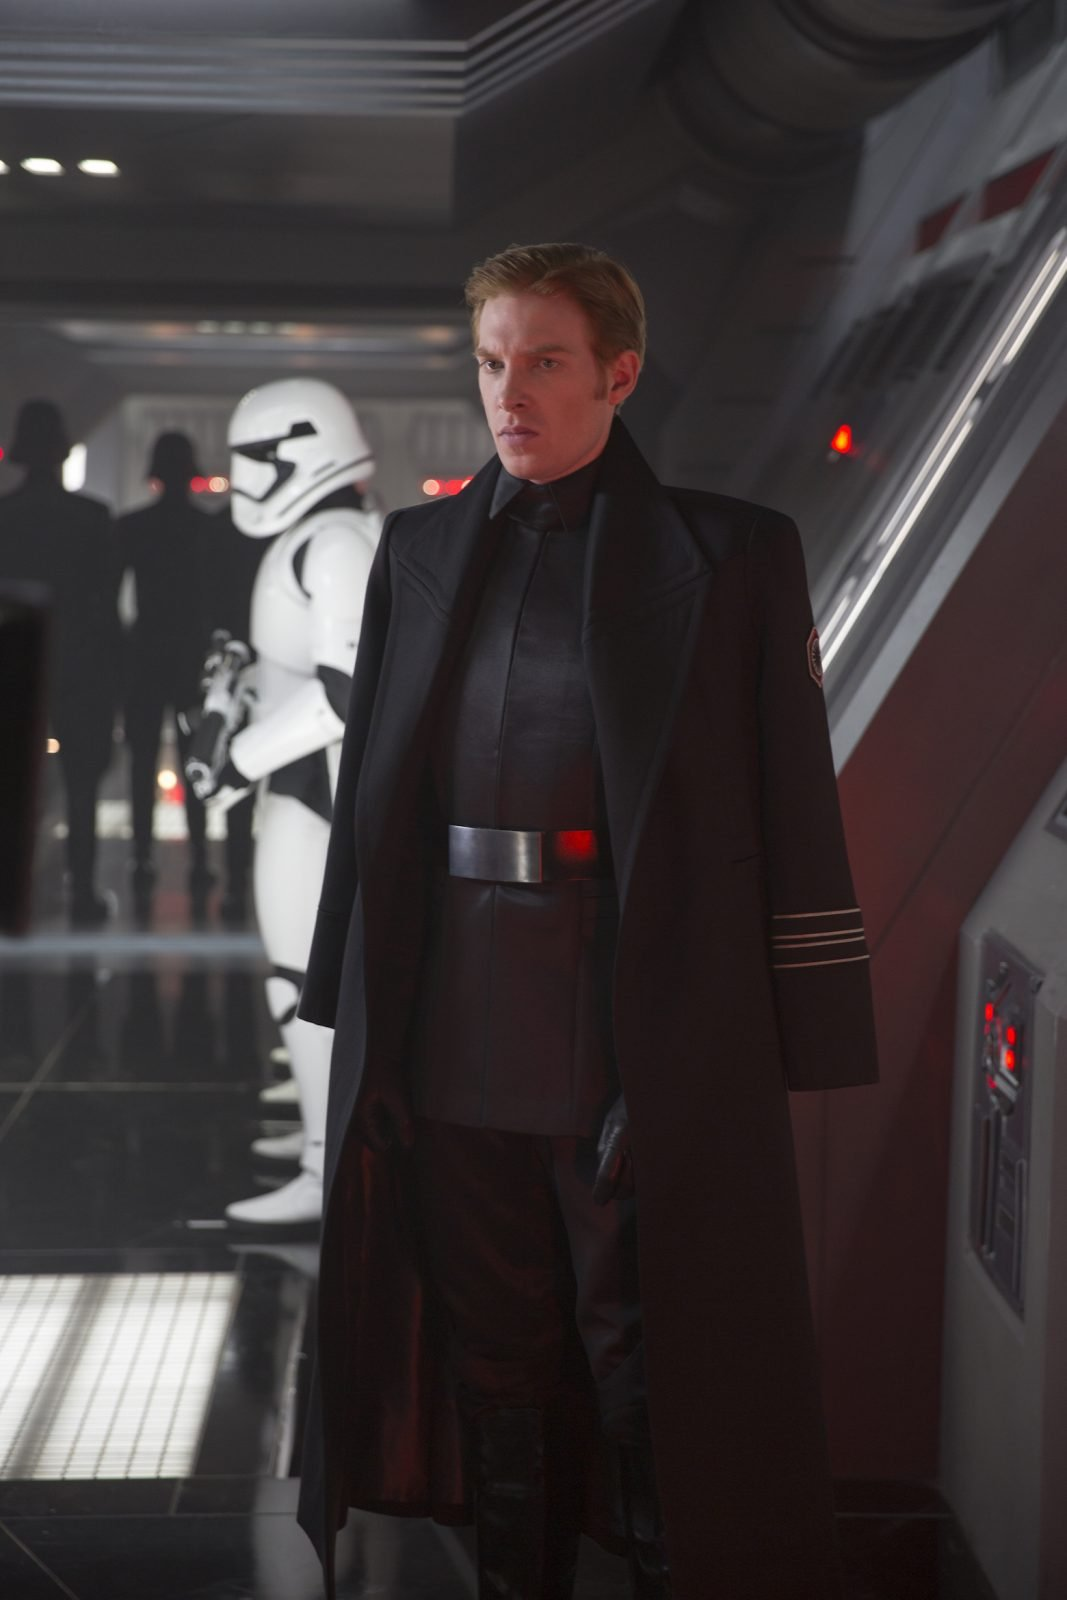 Star Wars VII The Force Awakens 16 - General Hux of the First Order